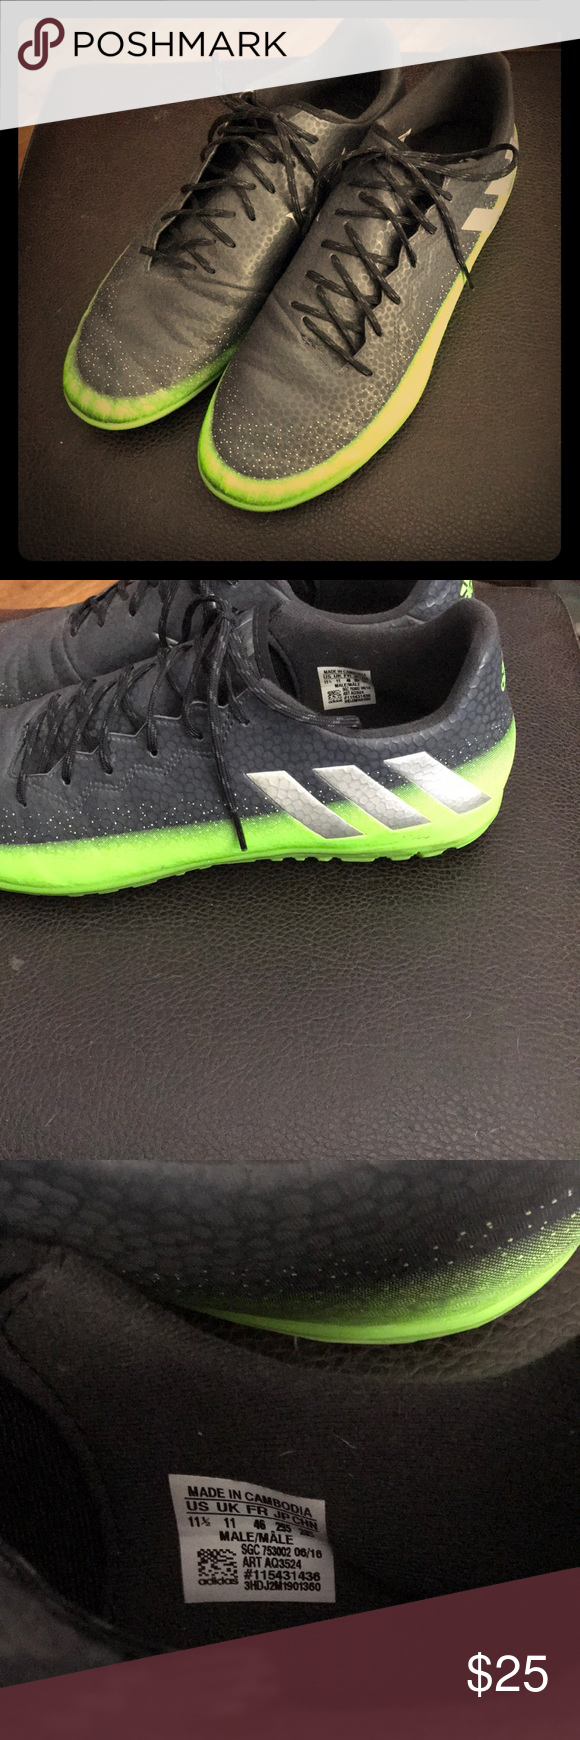 Adidas Messi 16 3 Indoor Soccer Shoes 11 5 Adidas Messi 16 3 Indoor Soccer Shoes Adidas Shoes Athletic Shoes Soccer Shoes Adidas Sneakers Nike